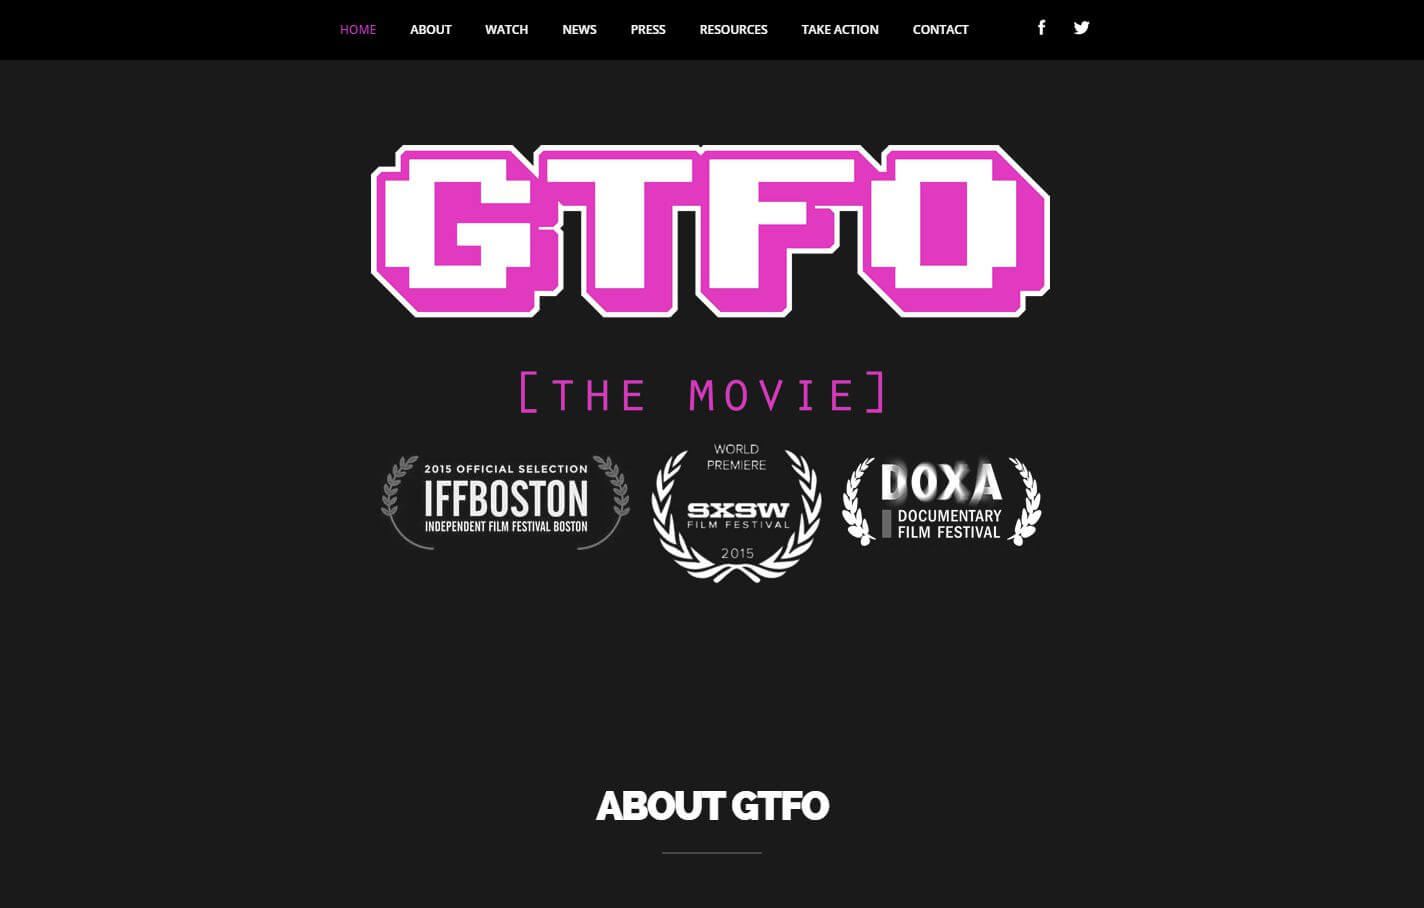 screenshot-gtfothemovie.com 2015-11-04 14-19-23